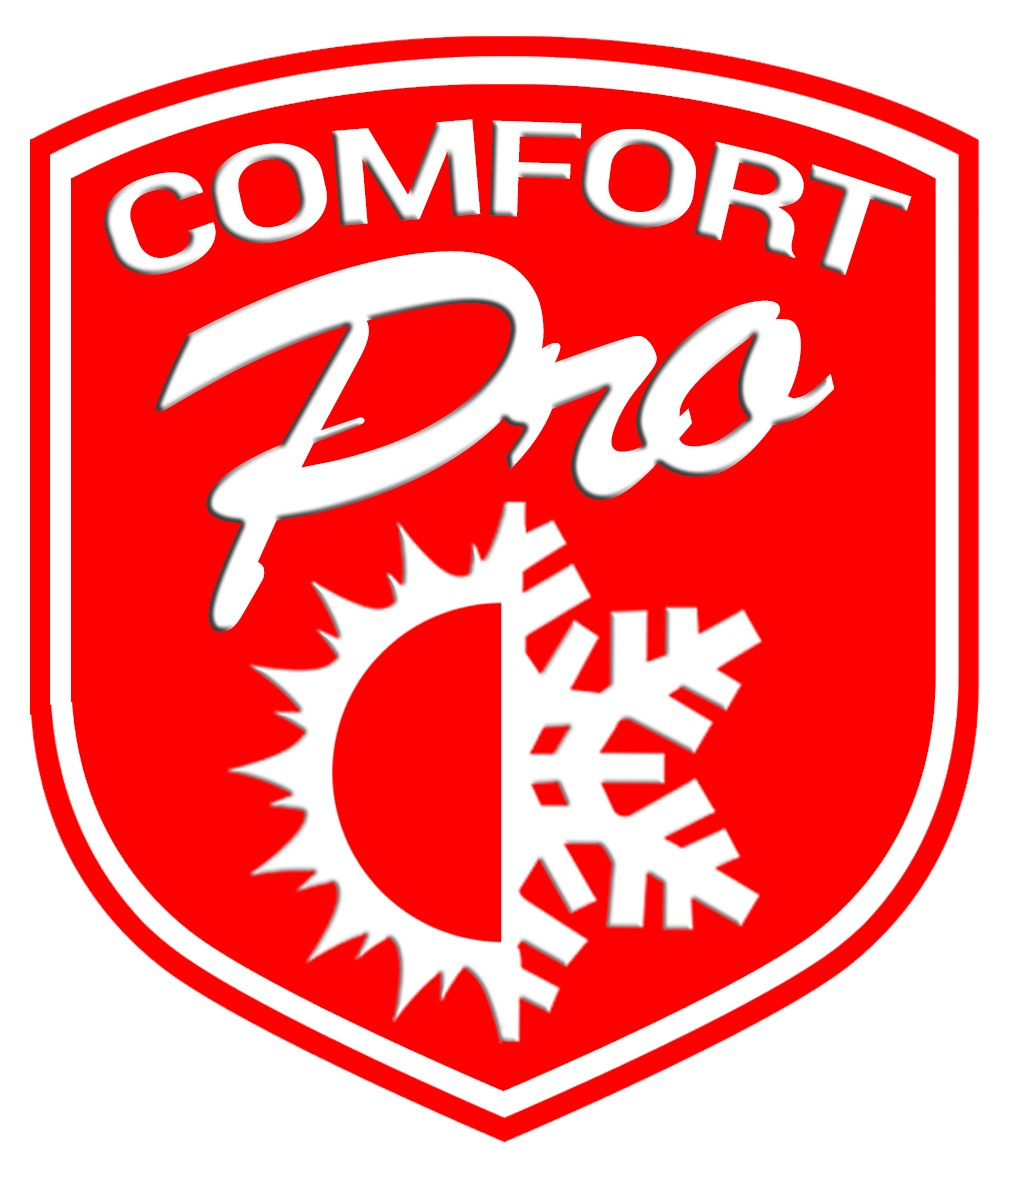 Carleton Place Heating, Cooling & Ventilation (HVAC) Professionals | Comfort Pro Ltd.